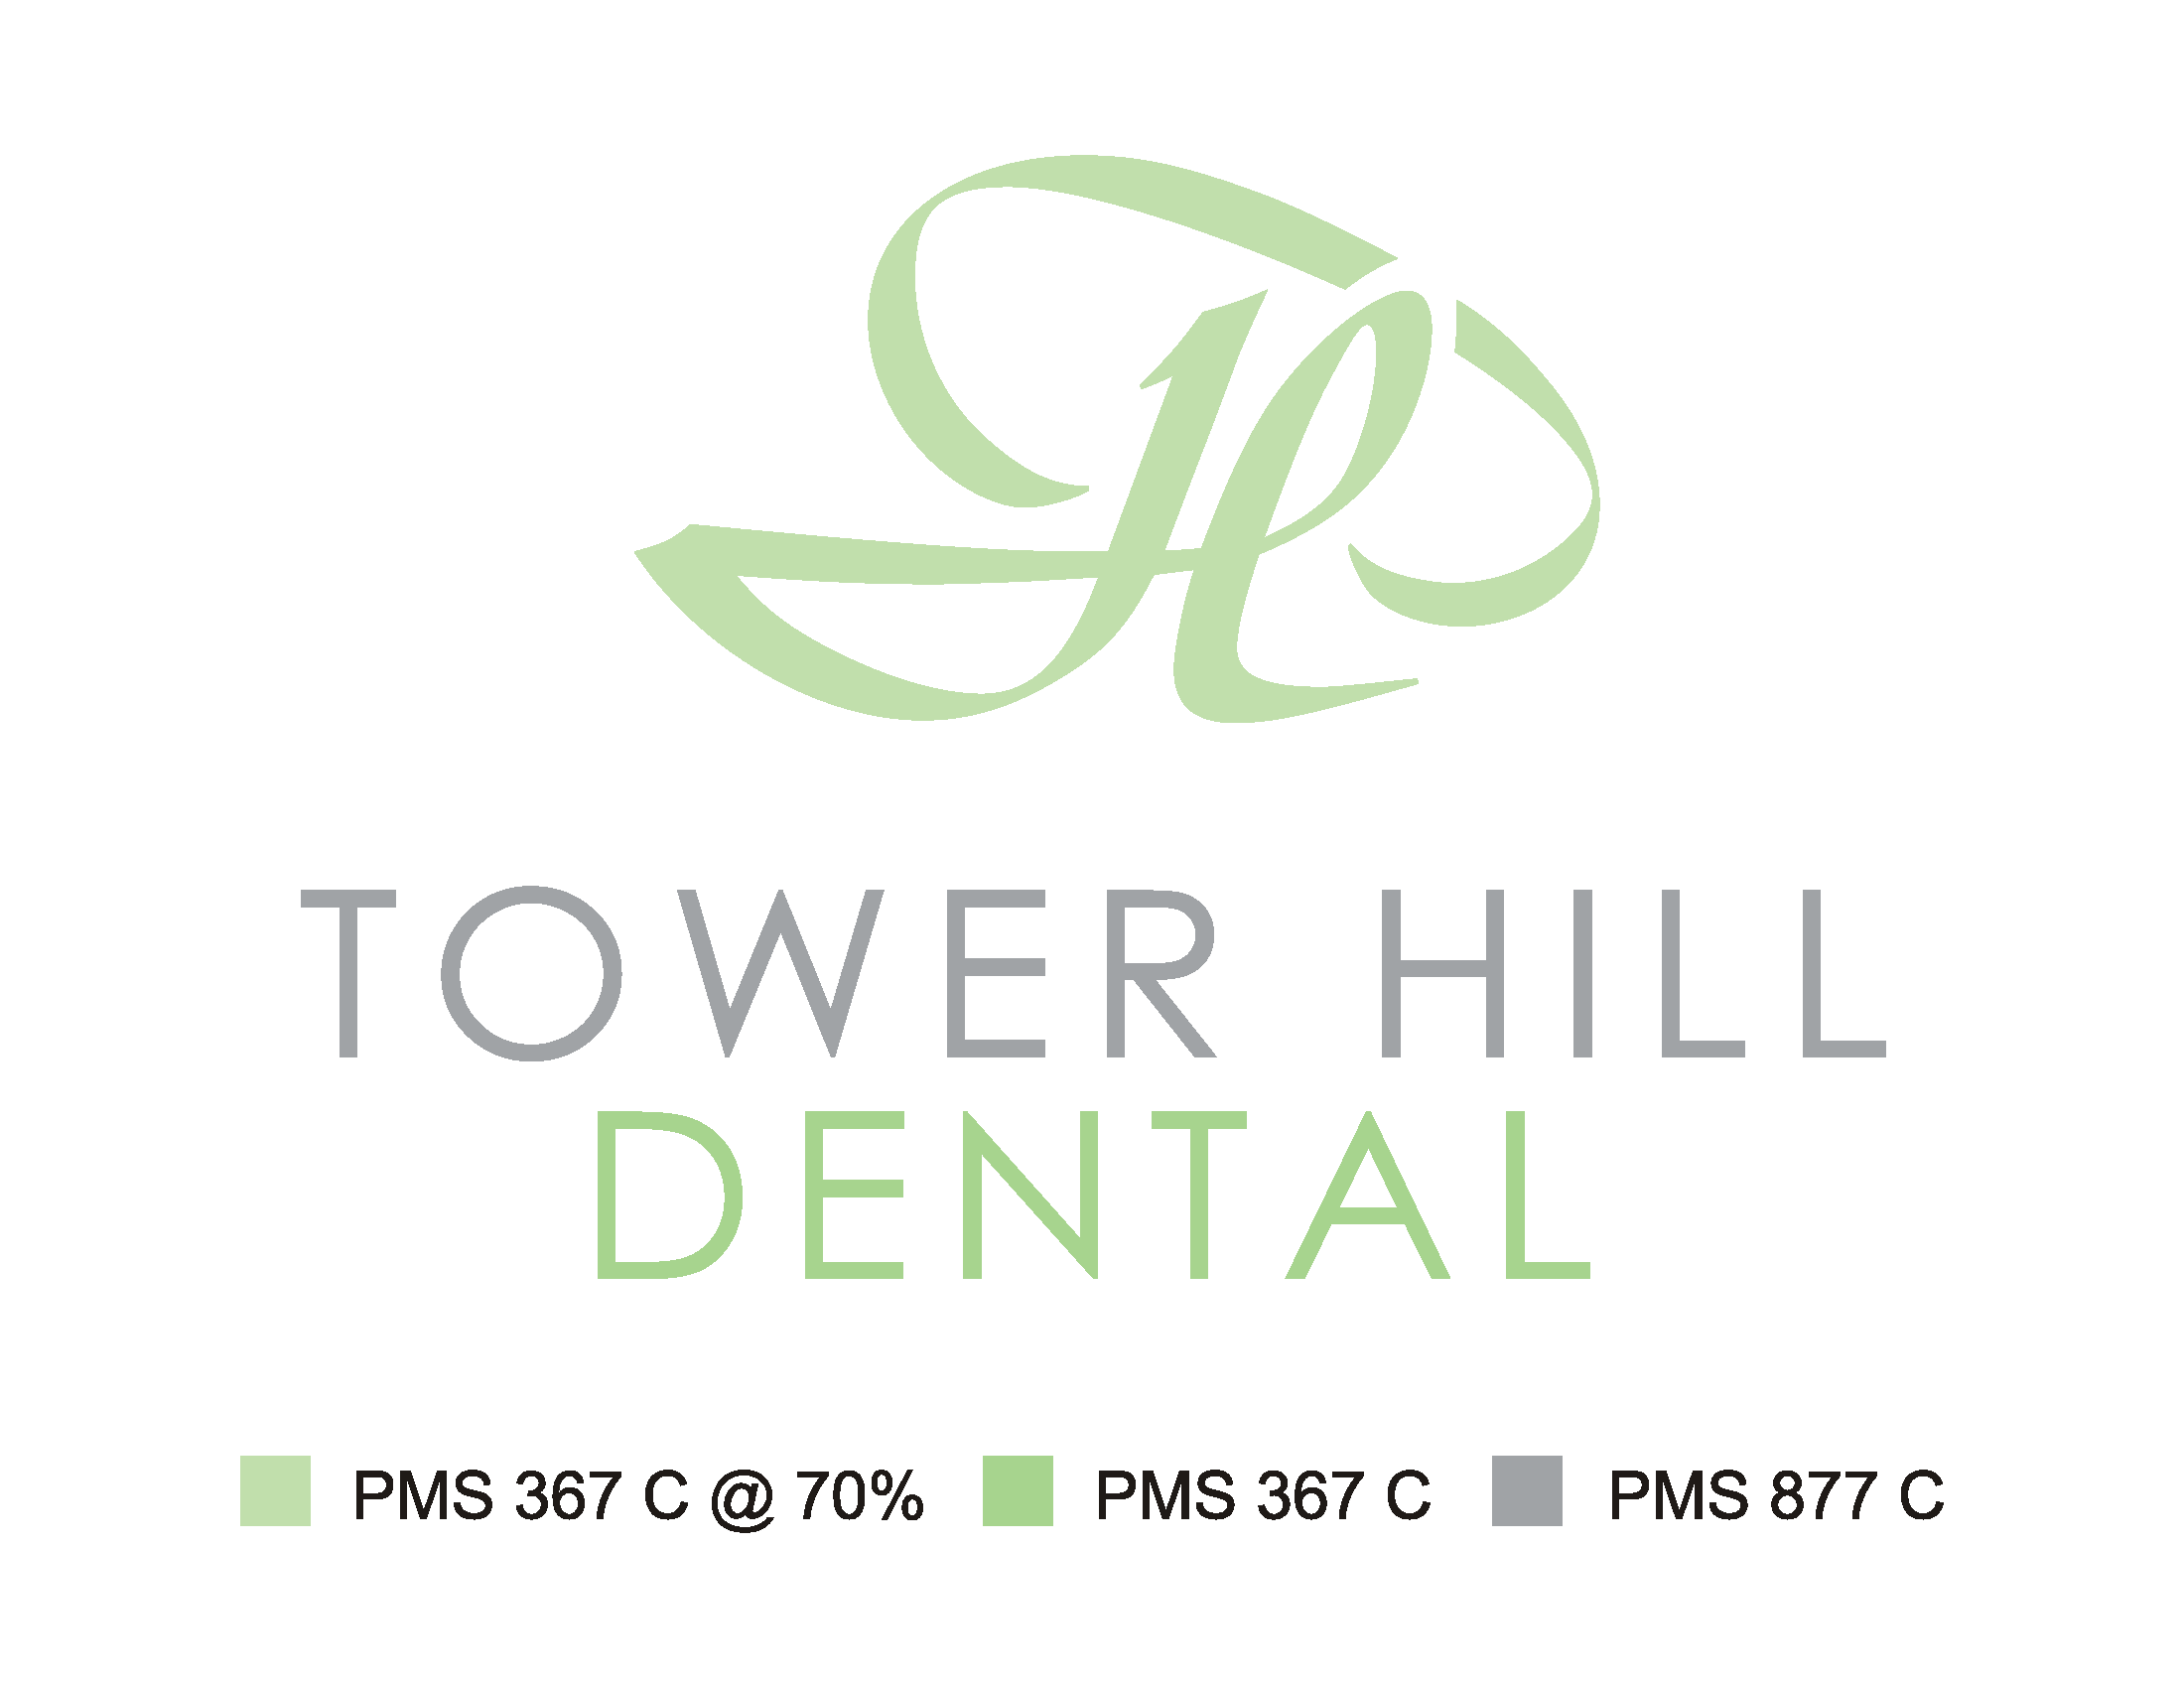 Tower Hill Dental